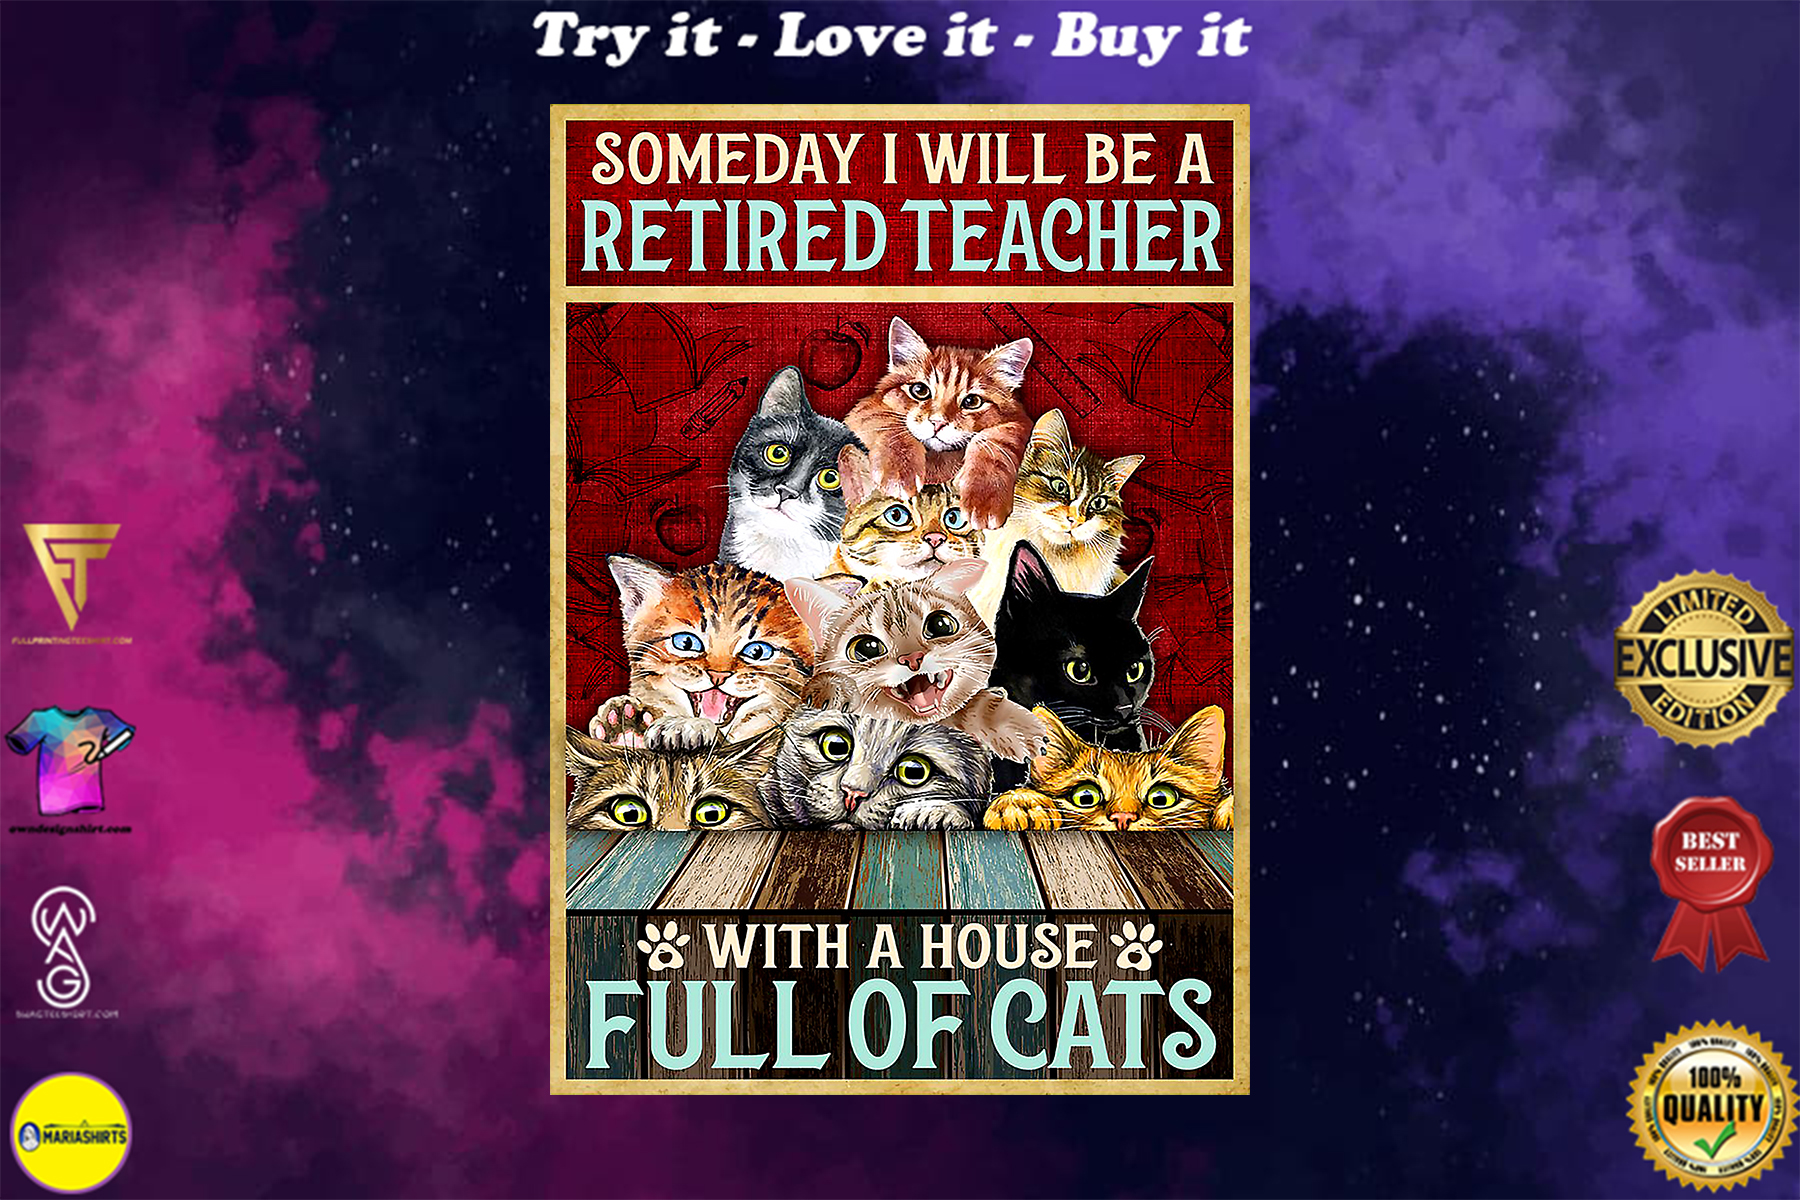 someday i will be a retired teacher with a house full of cats vintage poster